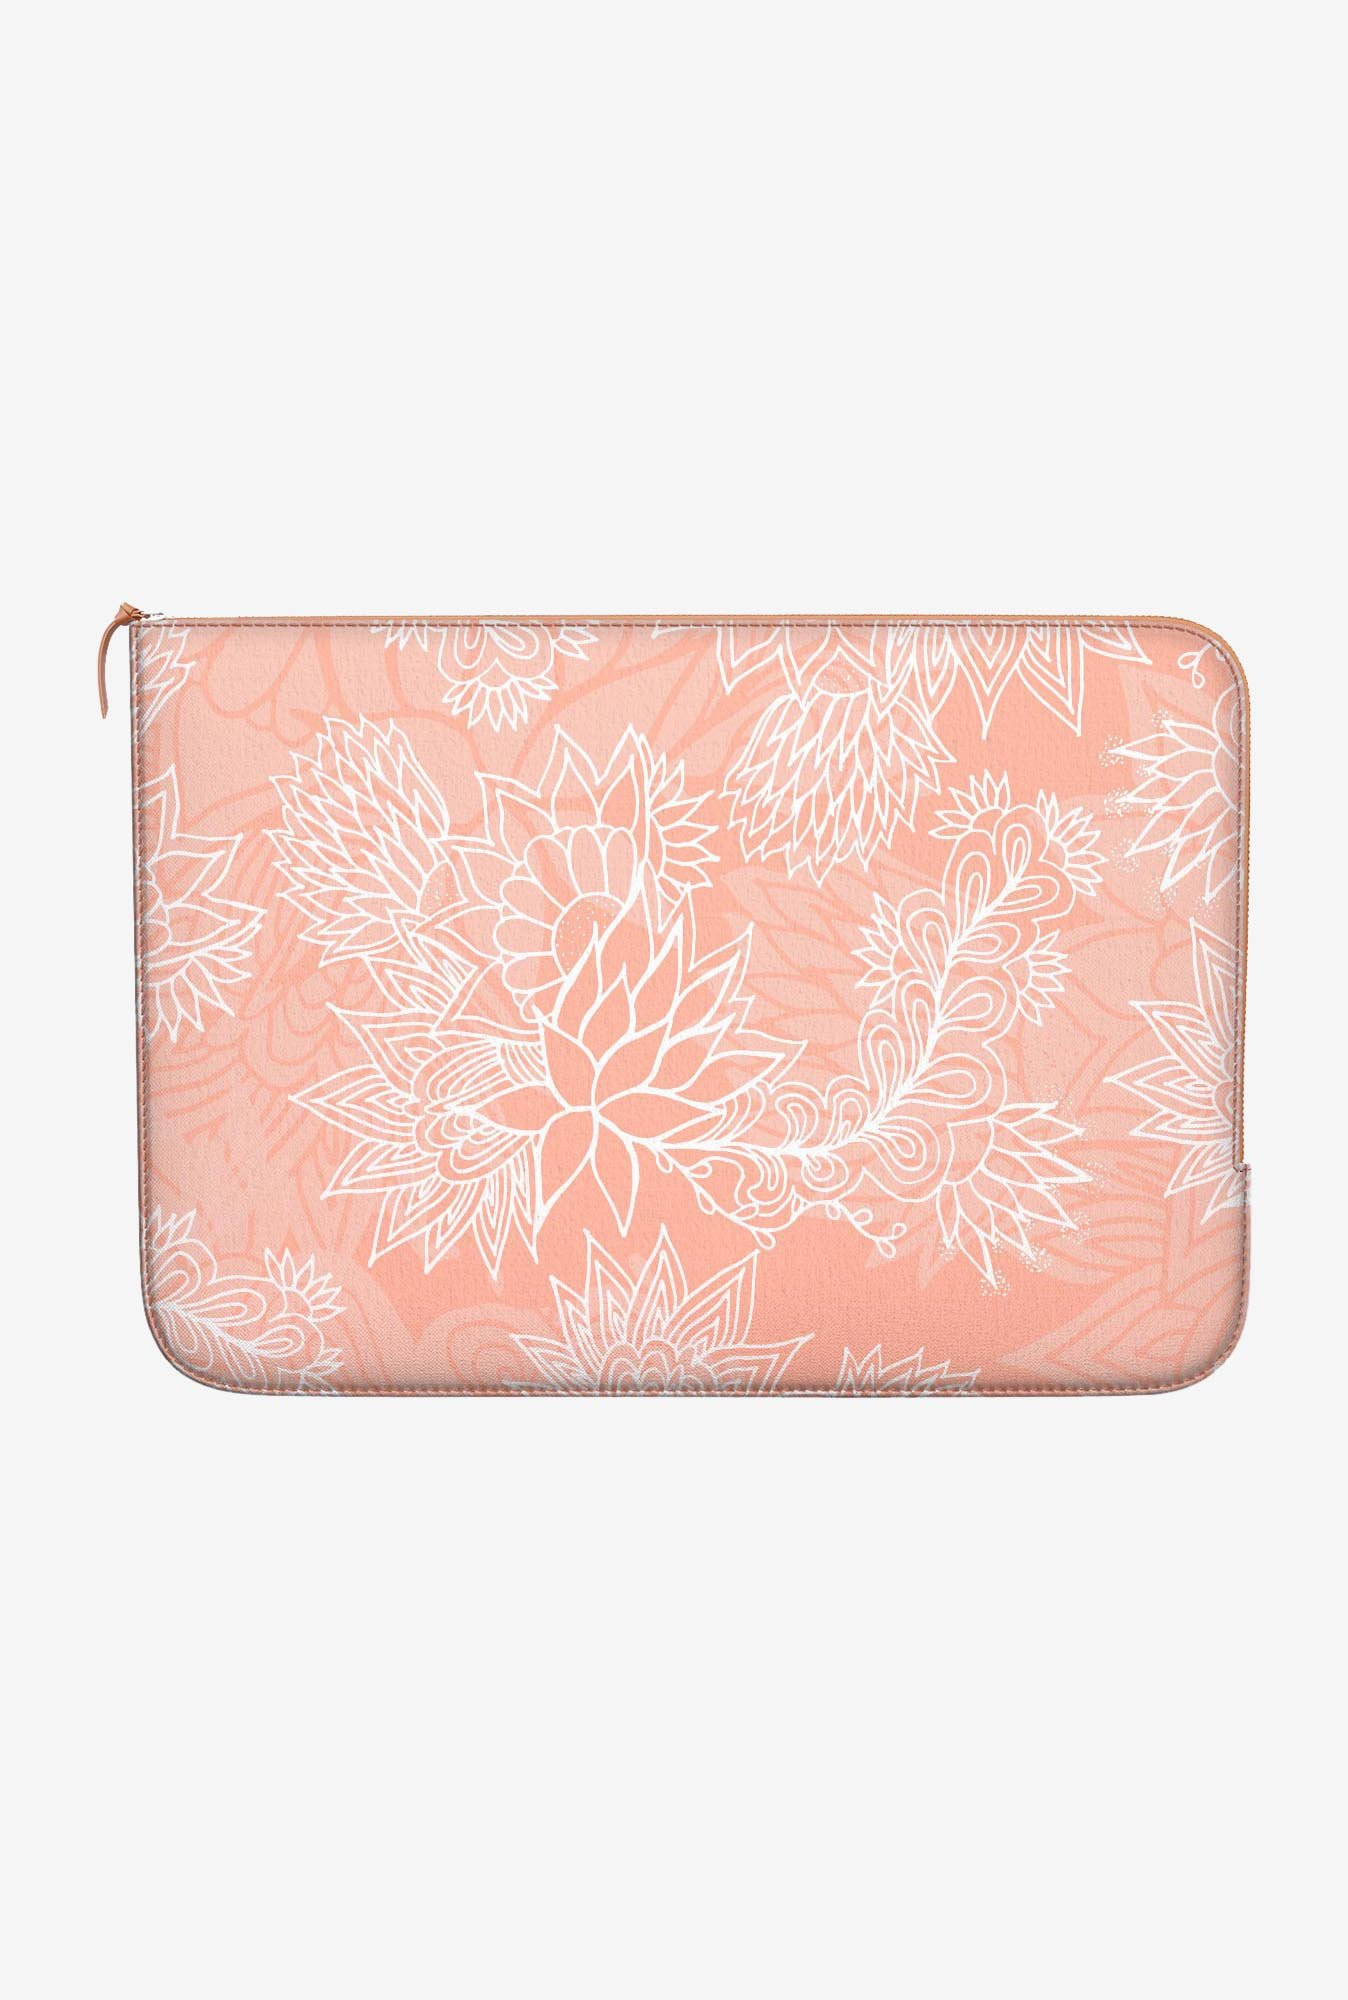 DailyObjects Chic Floral MacBook Pro 13 Zippered Sleeve